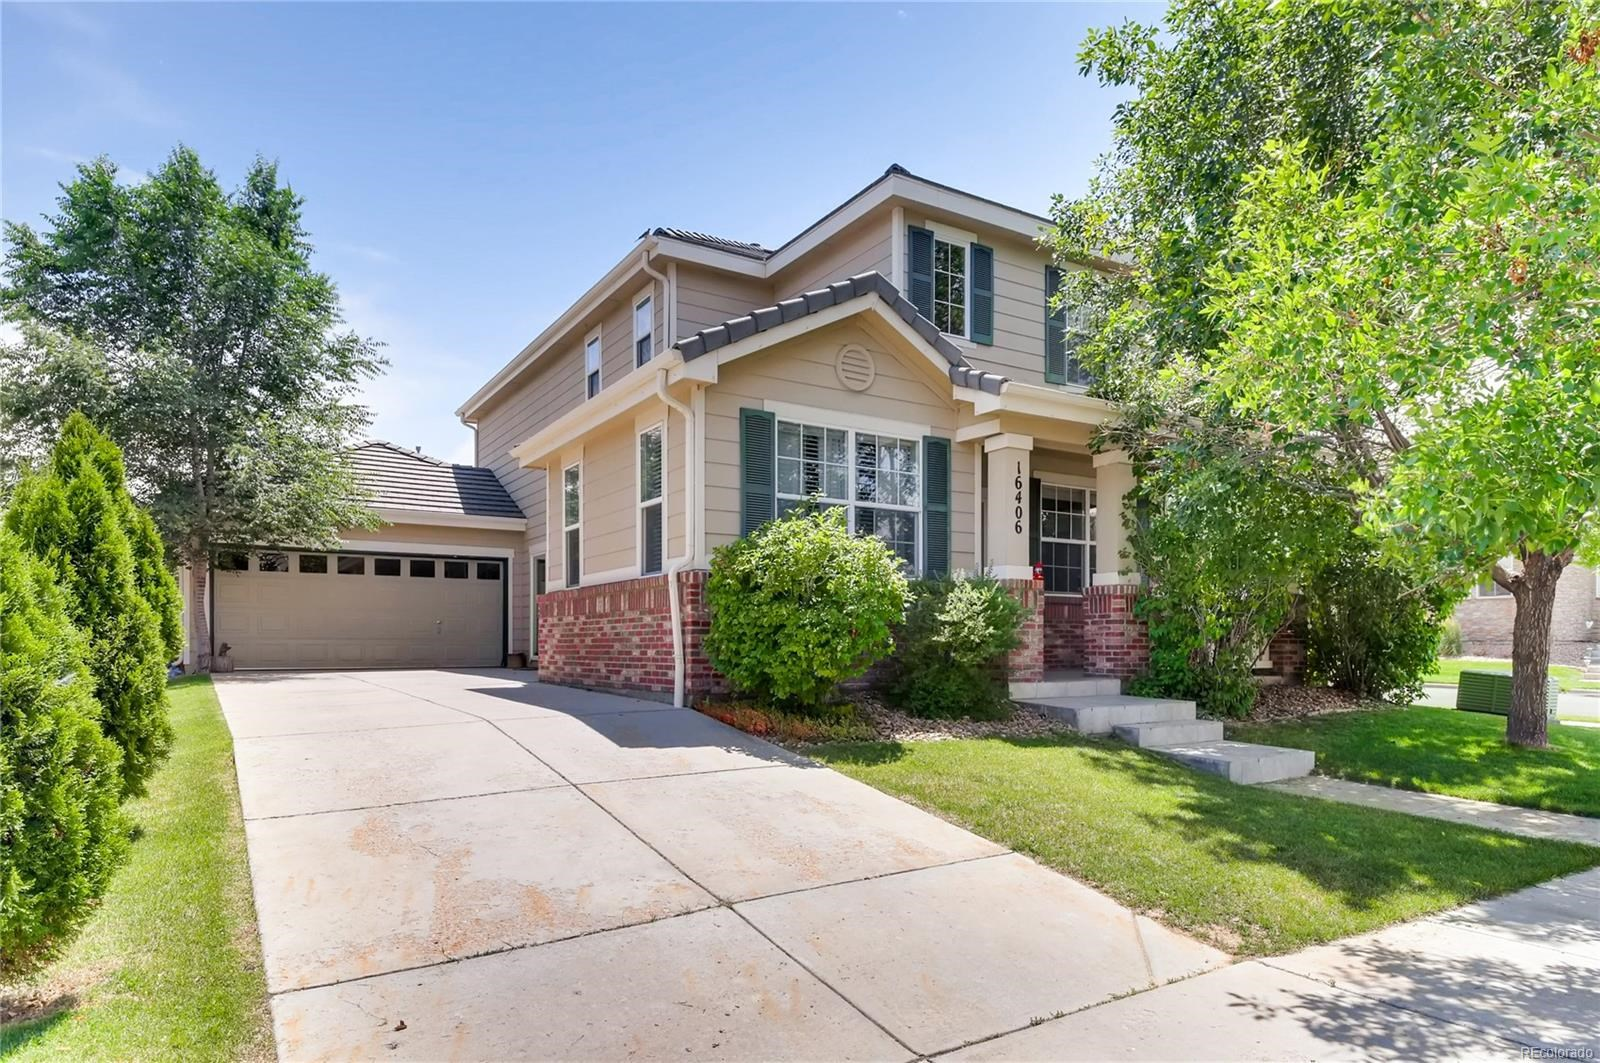 MLS# 3052384 - 16406  E 97th Place, Commerce City, CO 80022